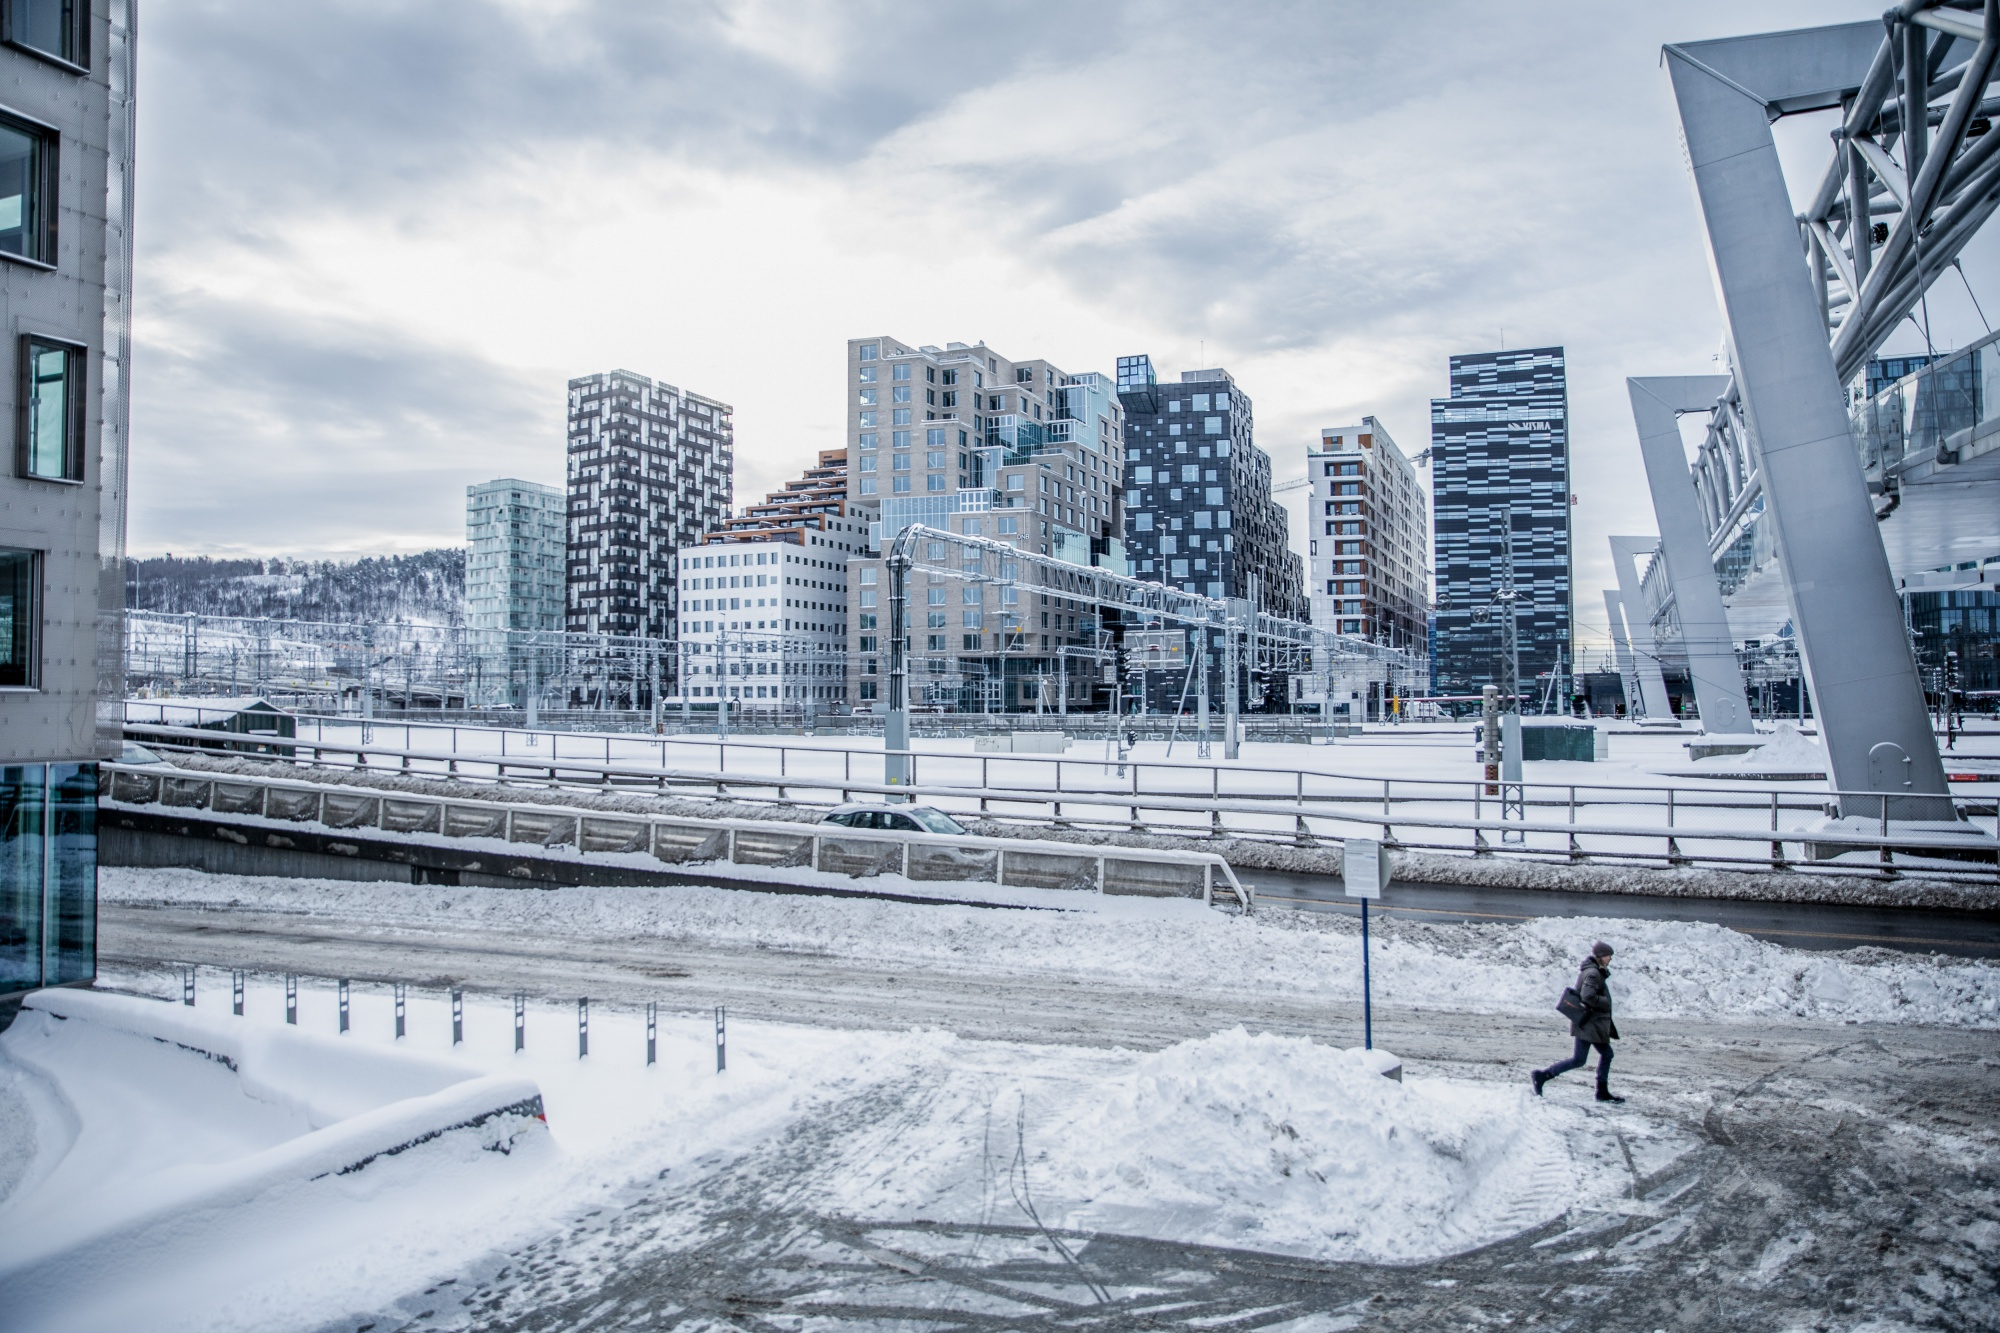 A pedestrian walks past buildings in the Barcode neighborhood of Oslo. Photographer: Odin Jaeger/Bloomberg